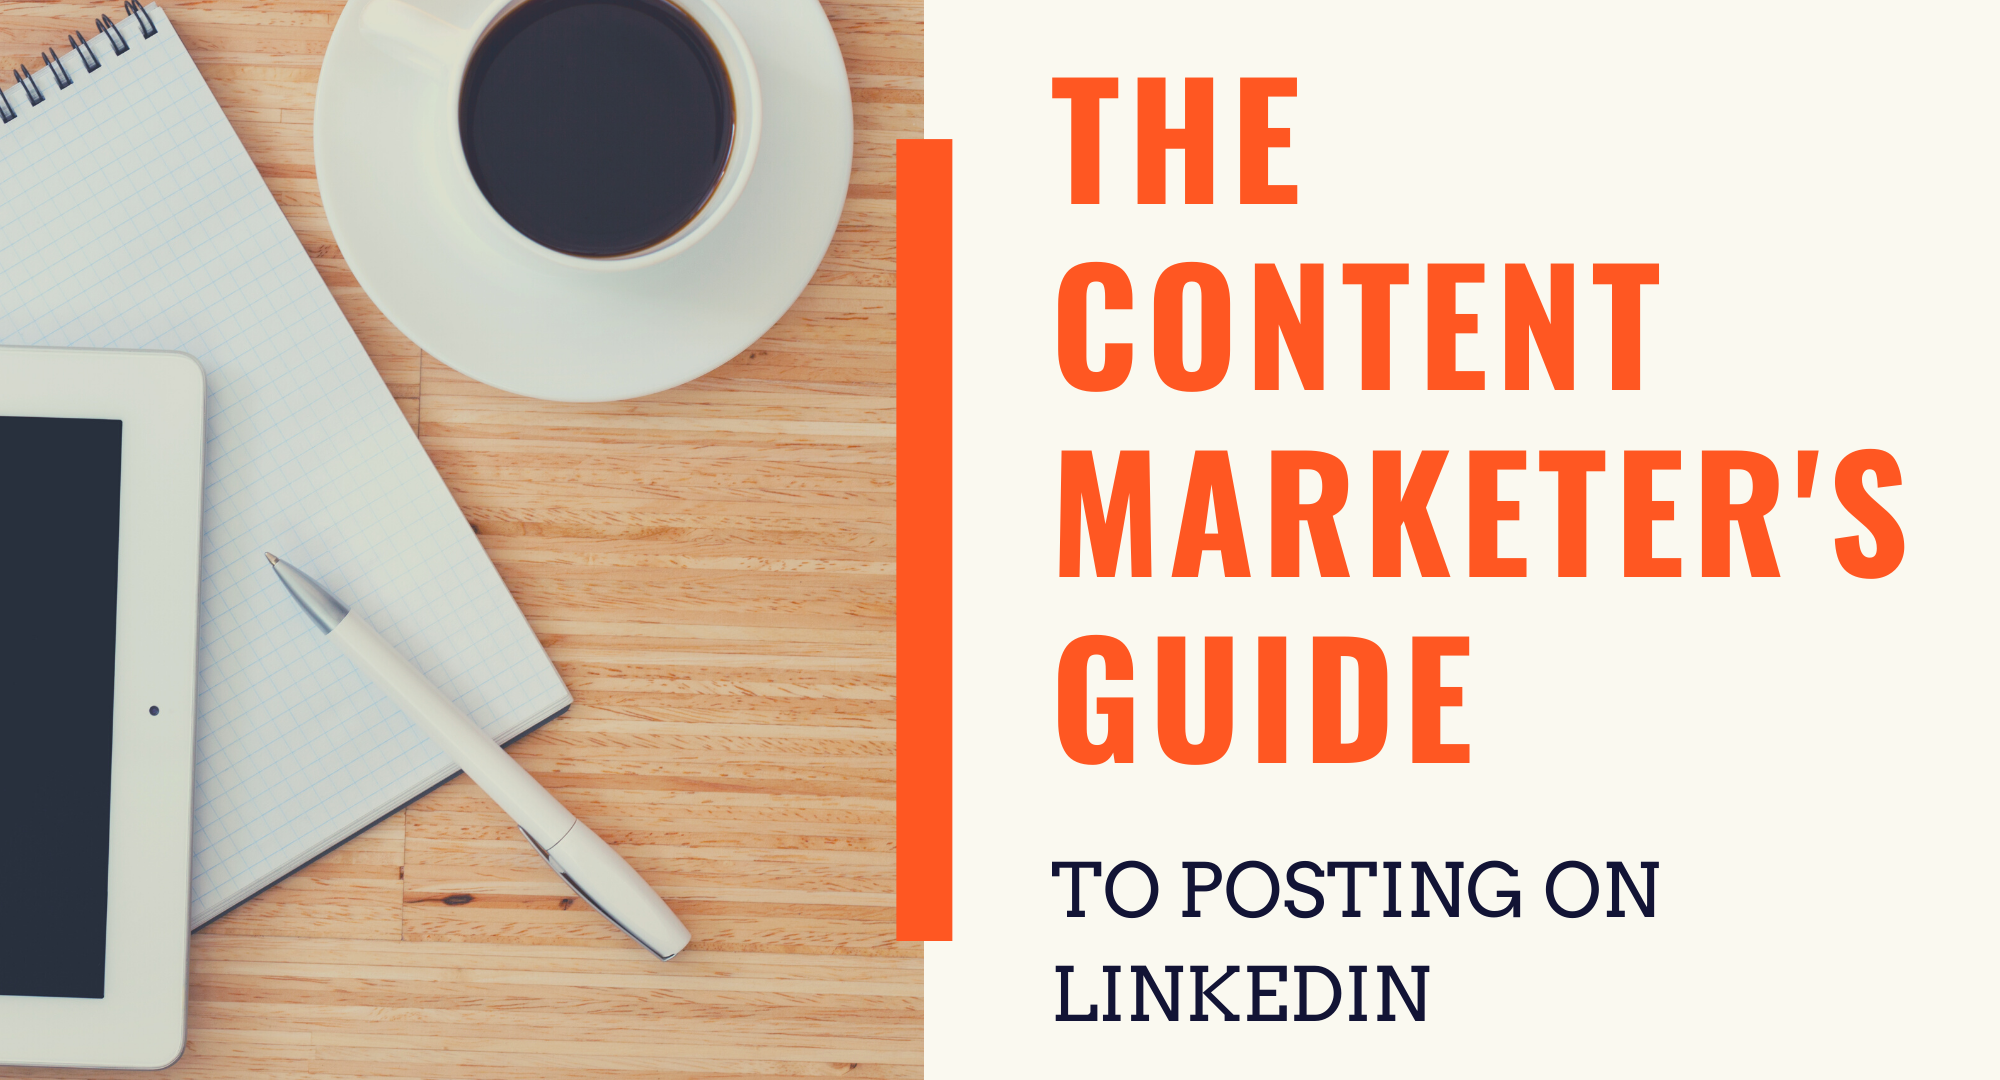 The Content Marketer's Guide to Posting on LinkedIn